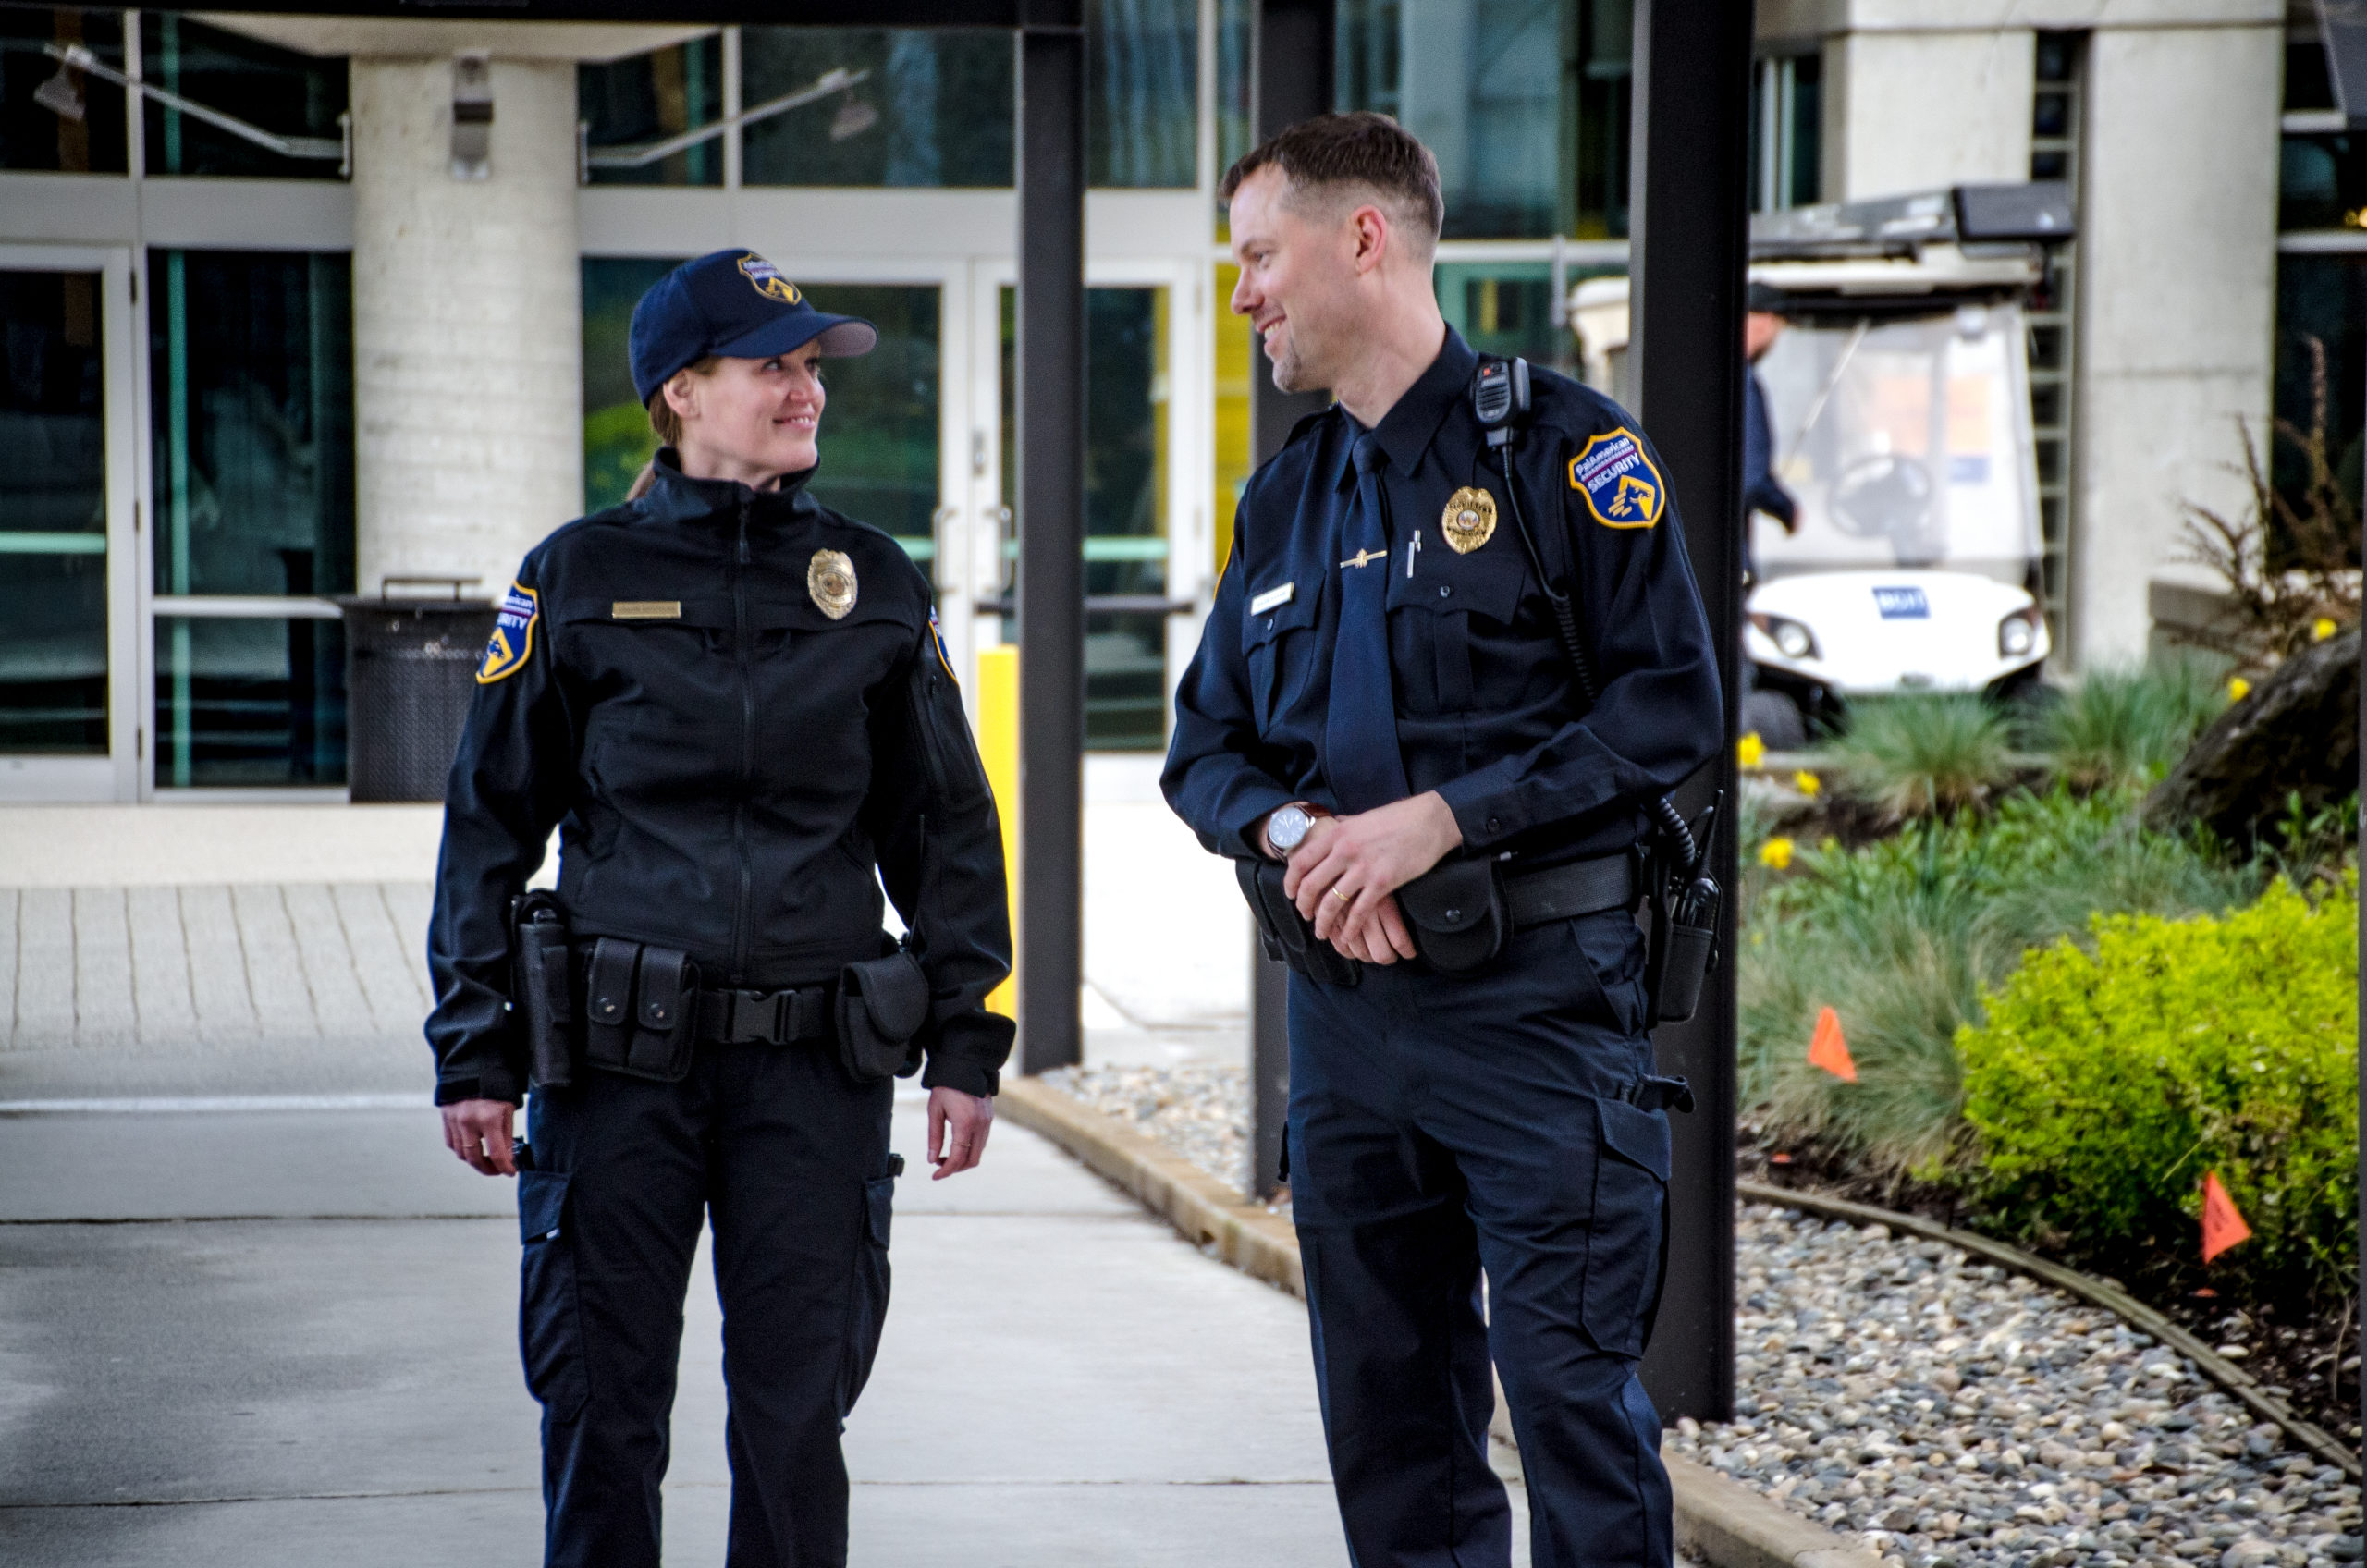 https://palamerican.com/wp-content/uploads/2021/06/Male-Female-Officer-Chatting-scaled-1.jpg